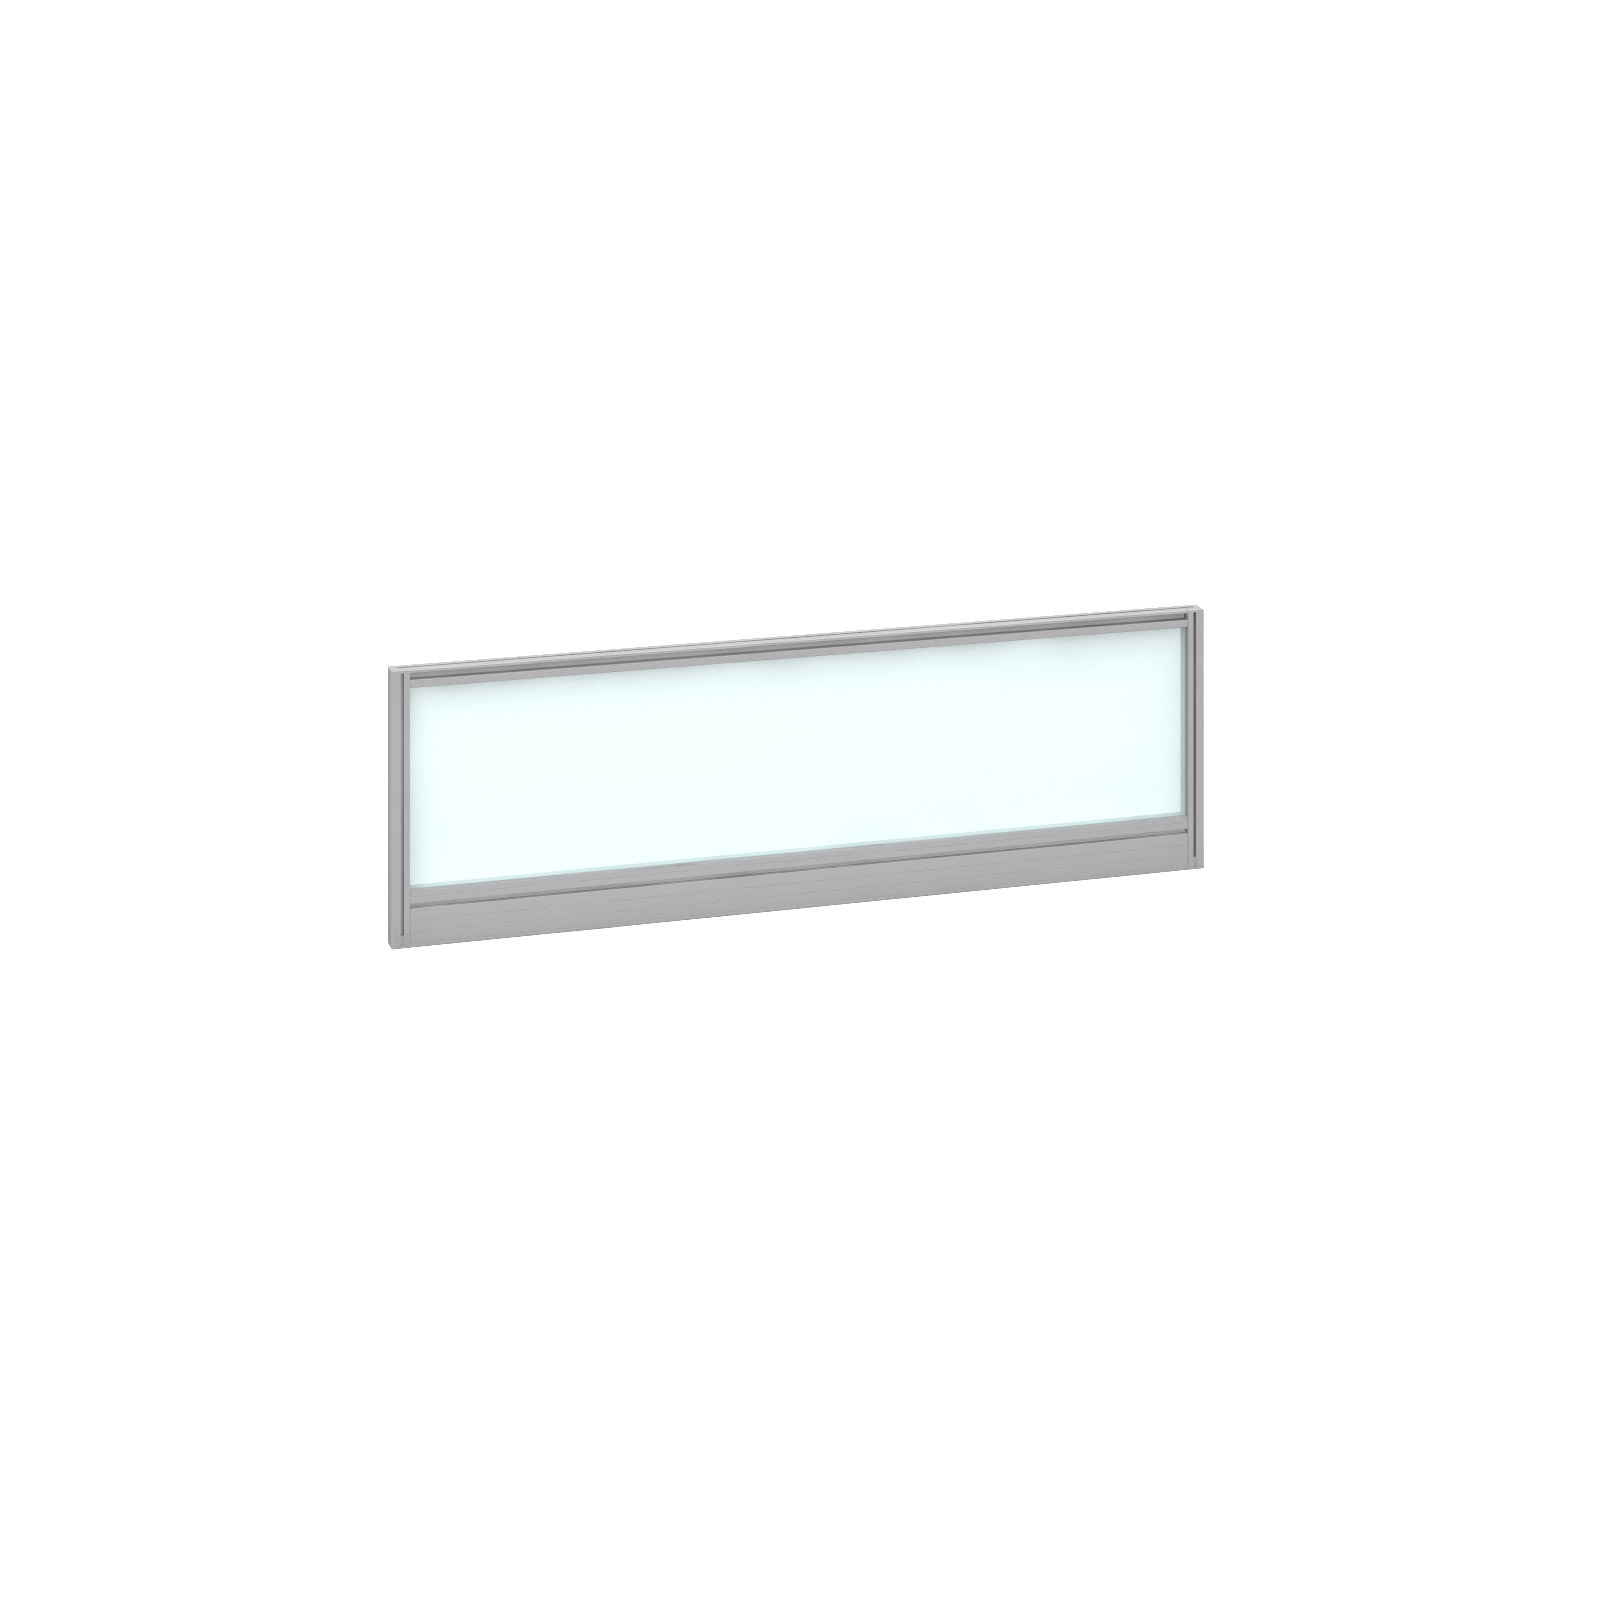 1200mm Deluxe Fully Glazed Rear Screen -  Silver Frame - White Glazing